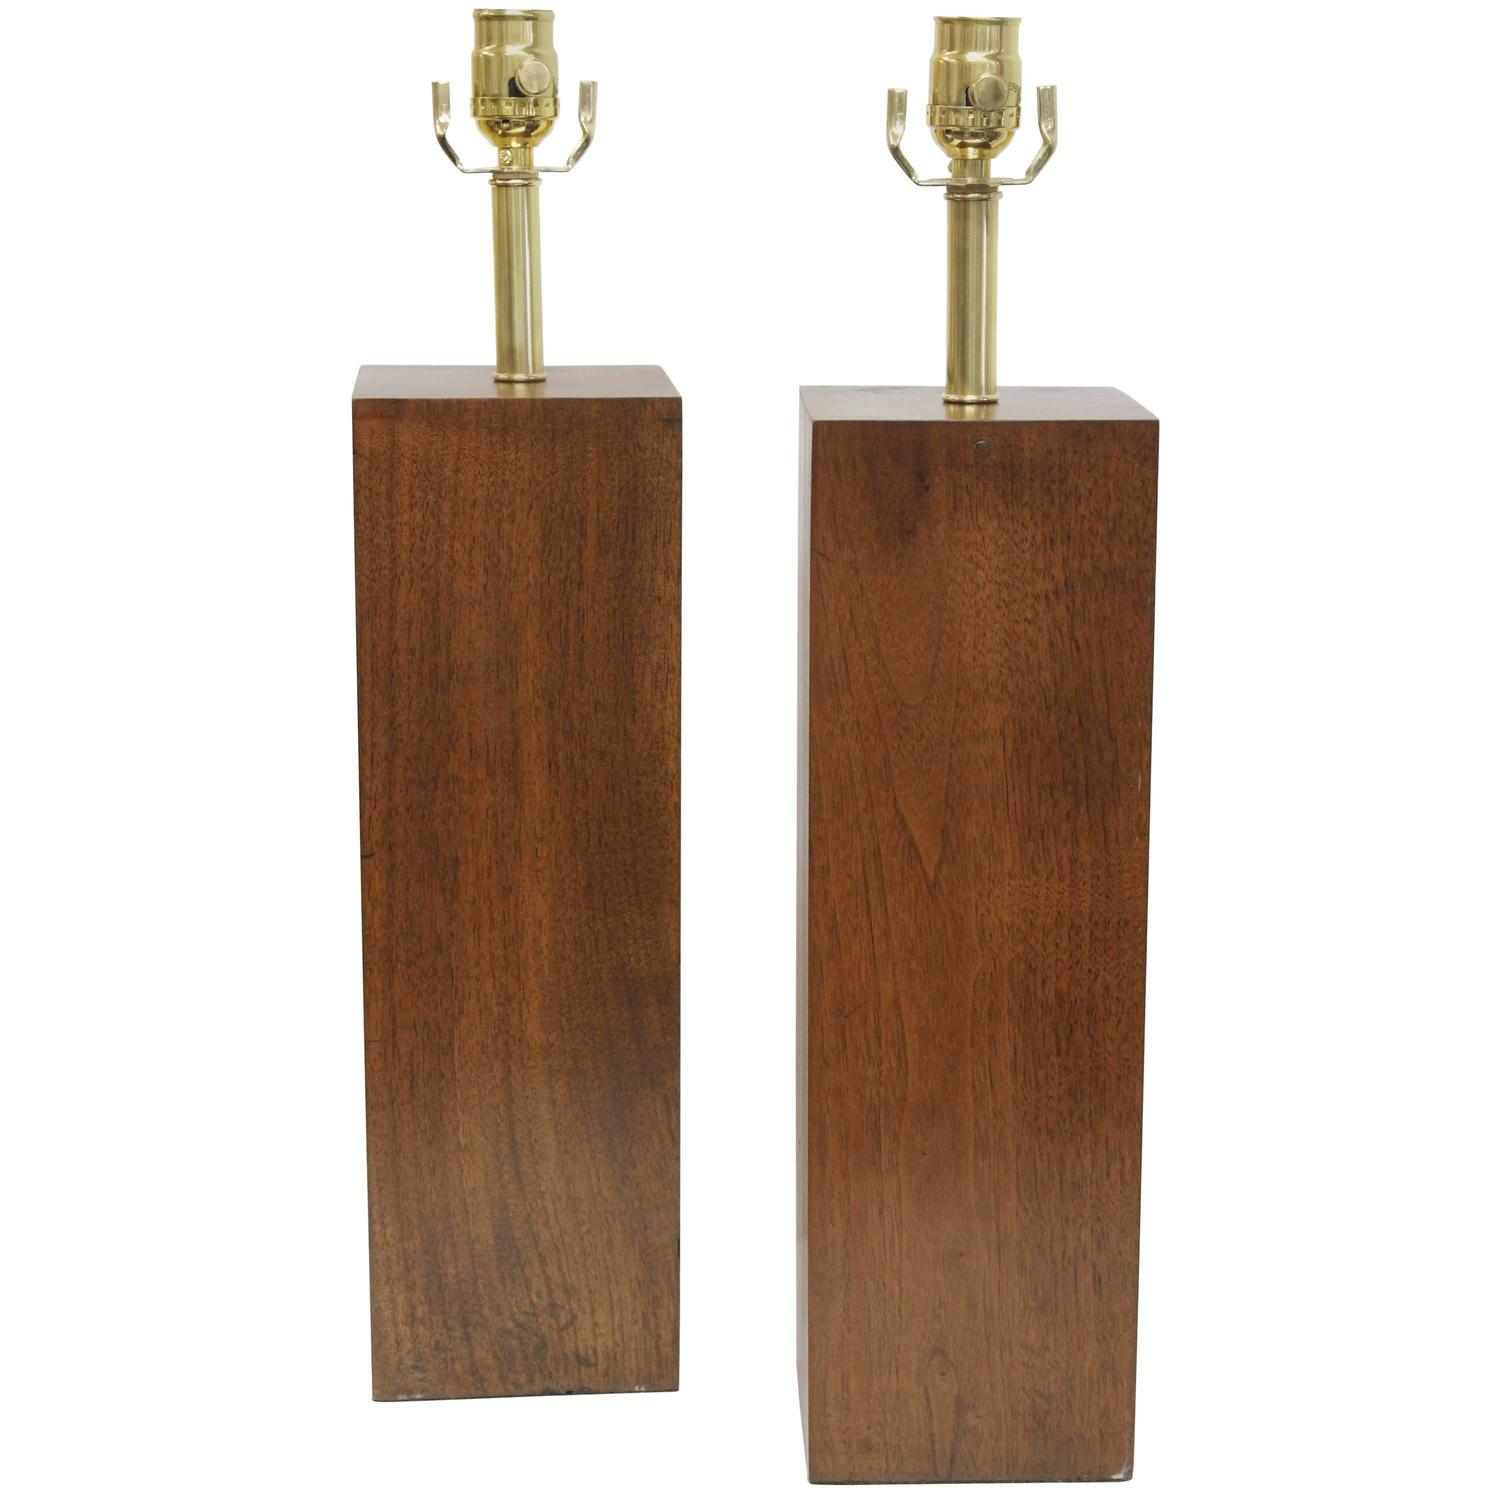 pair of wood block lamps for sale at 1stdibs. Black Bedroom Furniture Sets. Home Design Ideas